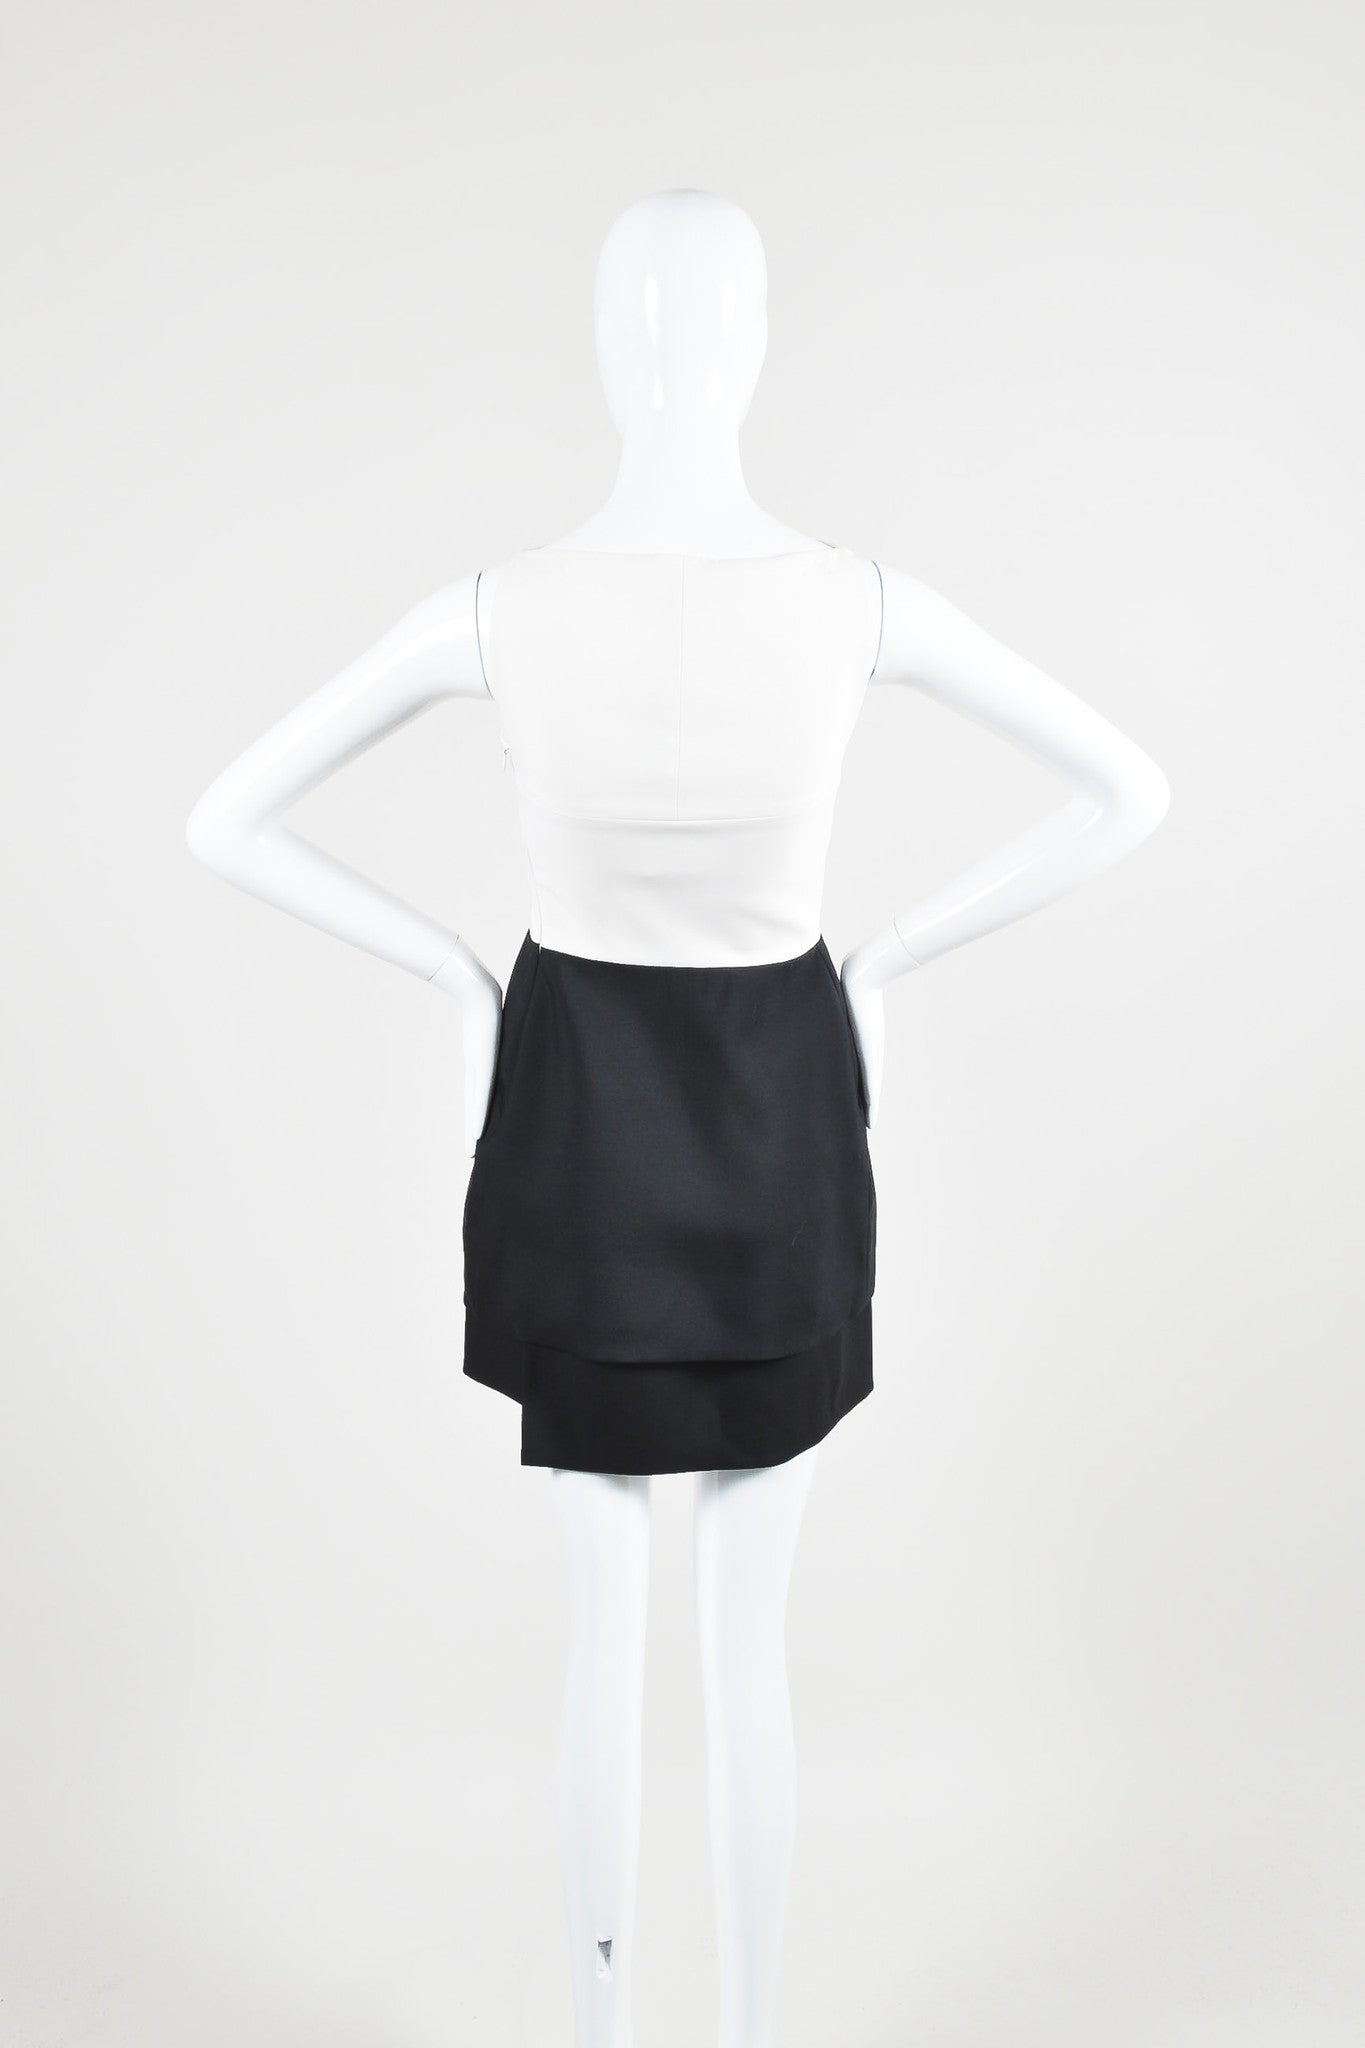 Narciso Rodriquez Black and White Wool and Silk Color Block Layered Dress Backview